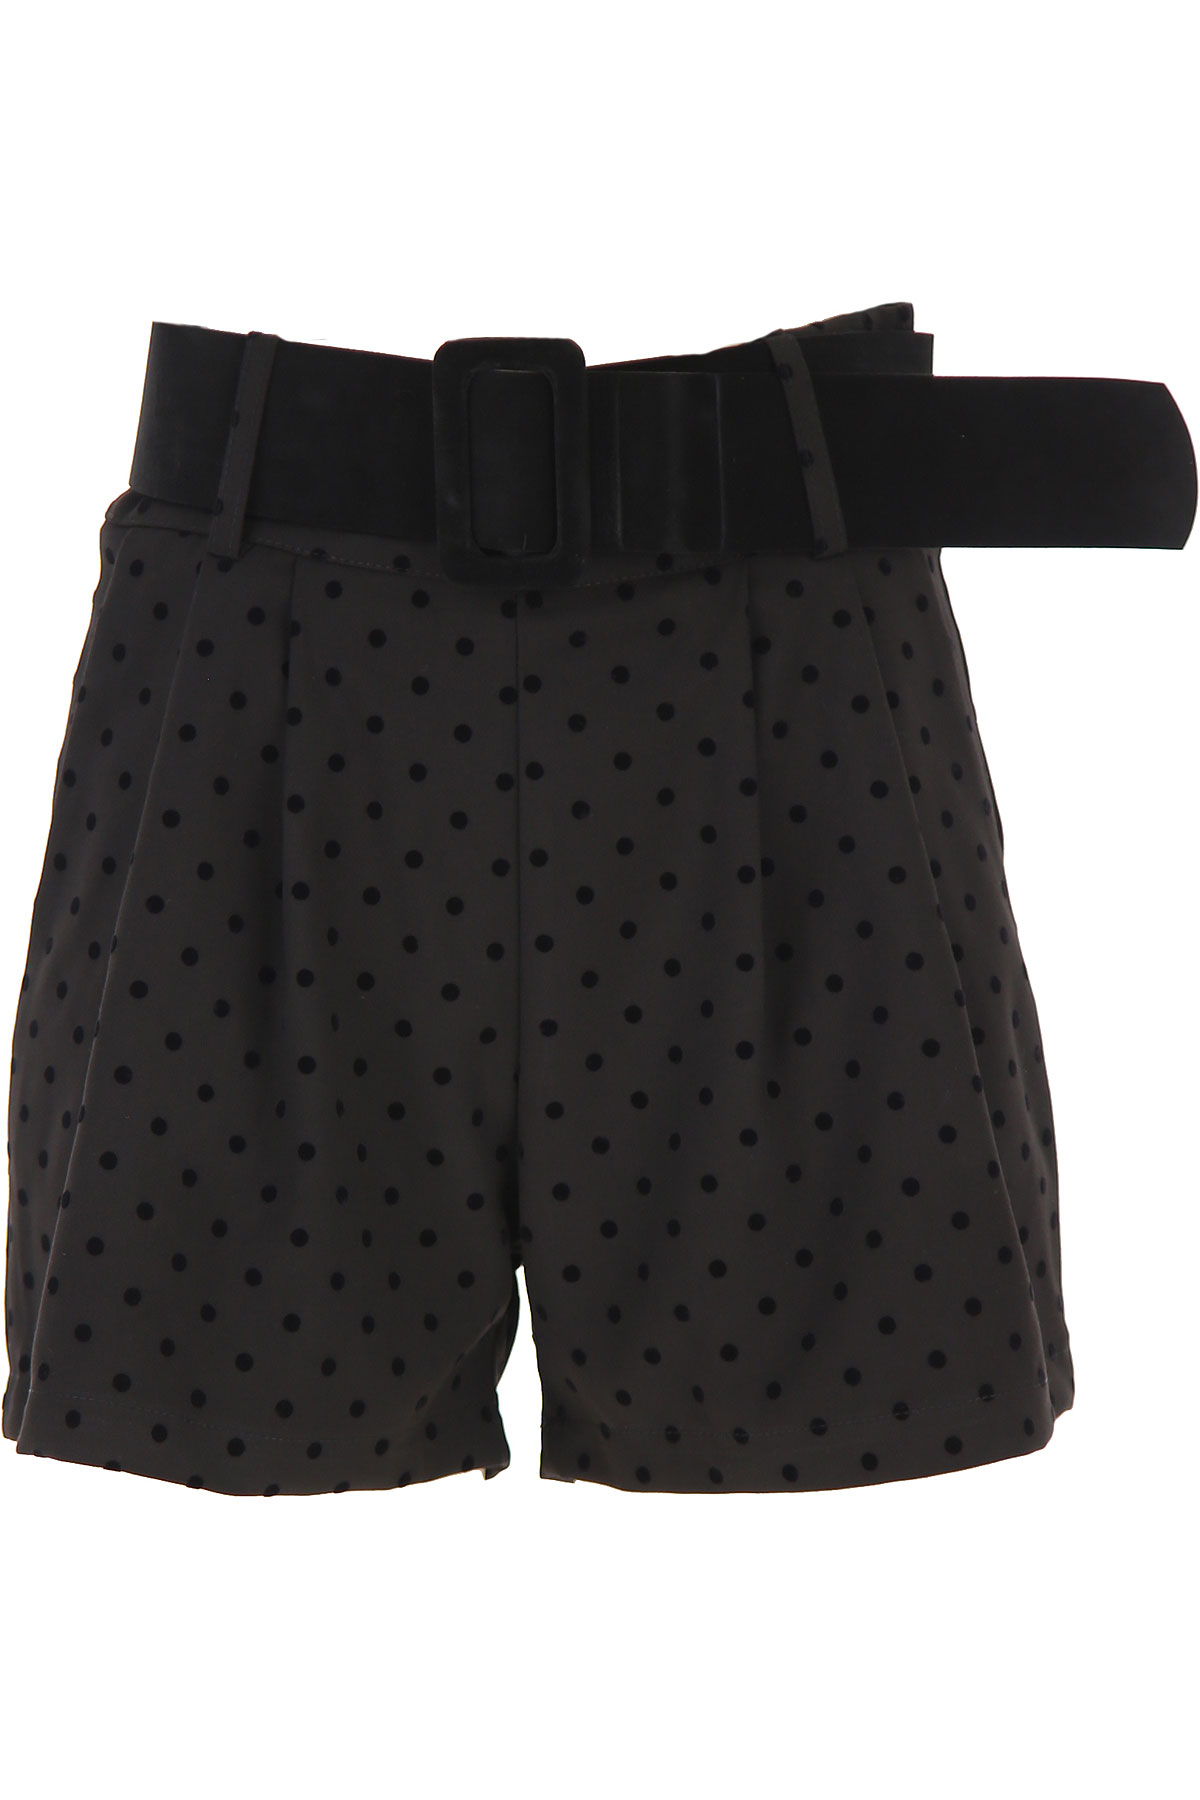 Silvian Heach Shorts for Women On Sale, Black, polyester, 2019, 24 26 28 30